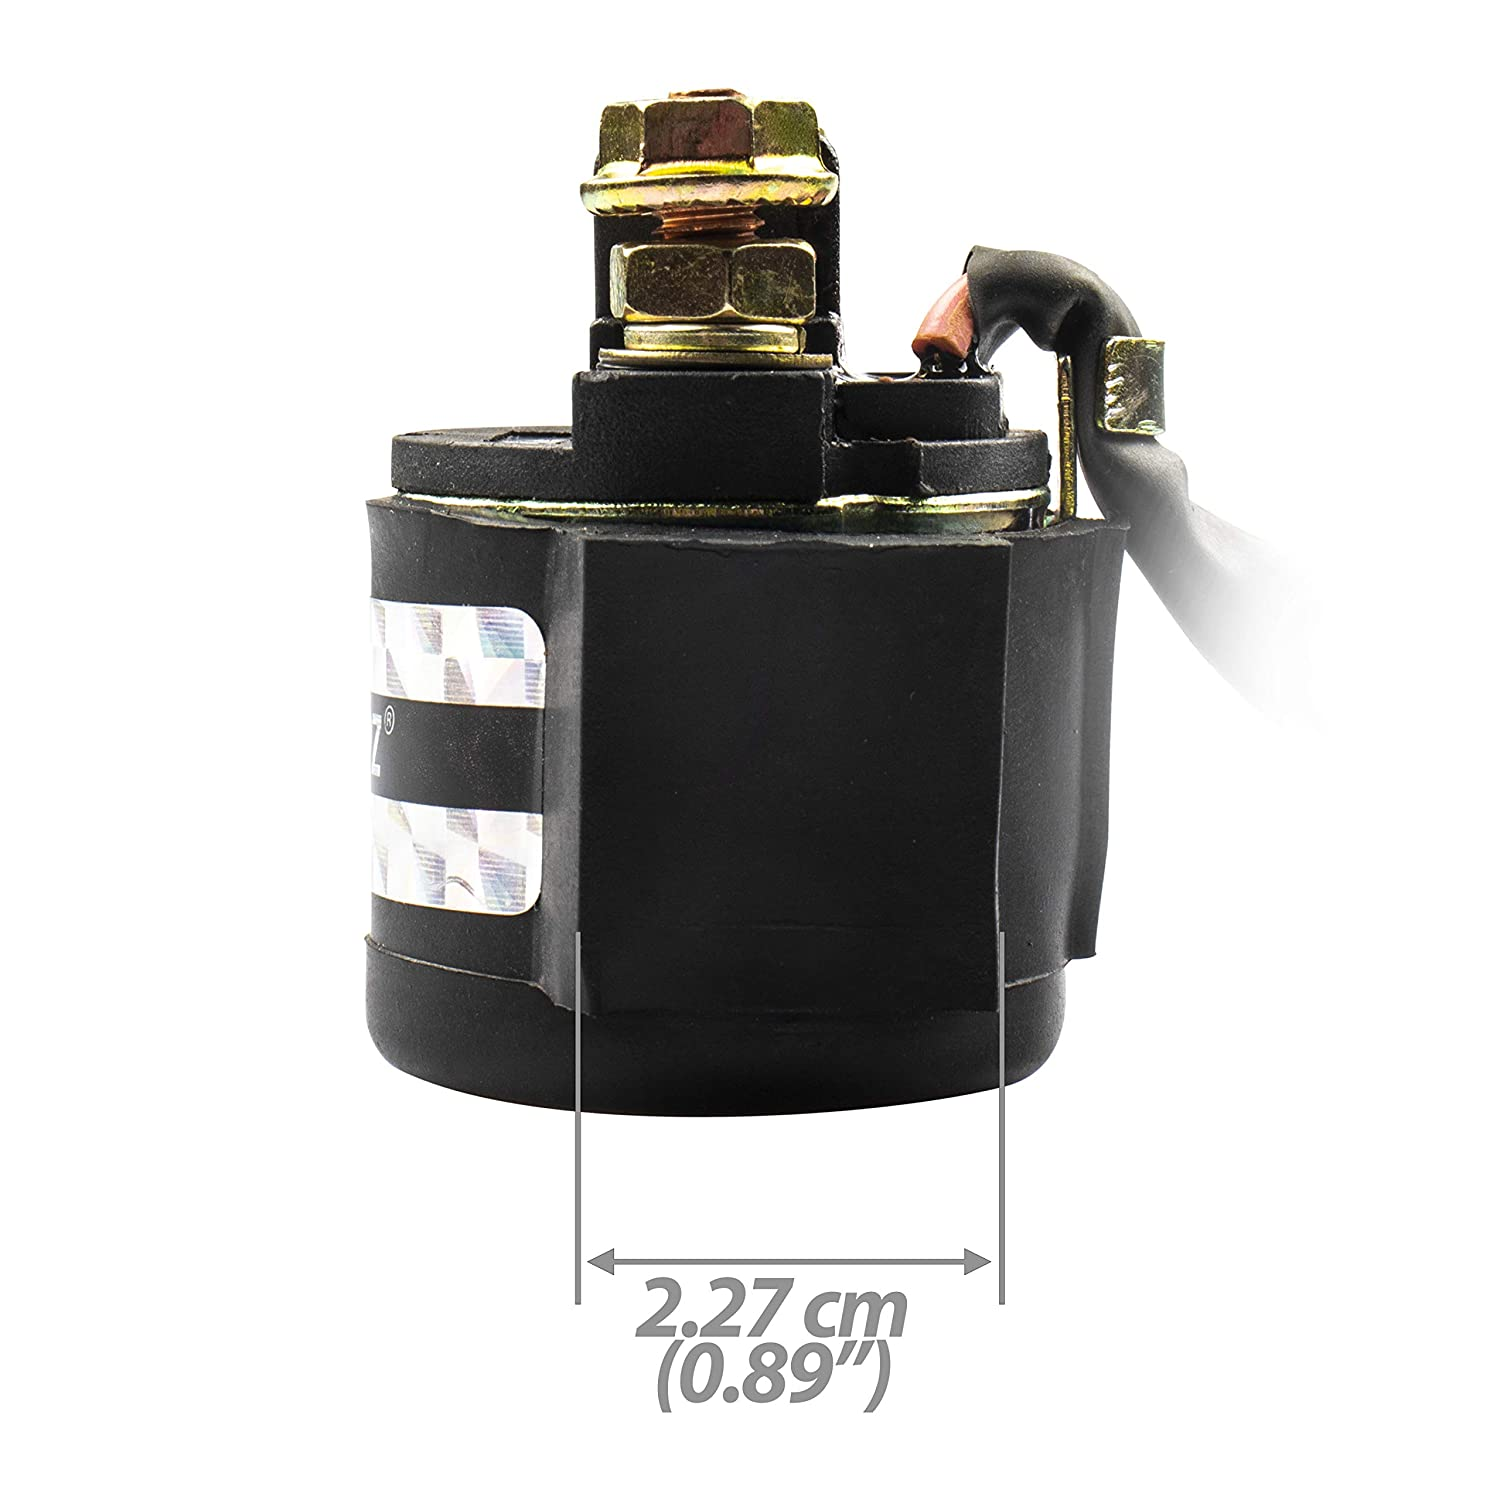 UMPARTS 12V Starter Relay Solenoid Switch Motor for All years TaoTao youth KIDS ATV 4 Wheeler 125cc Tao Tao ATA-125A1 SN2 ATA-125-A1 ATA125A1 ATA 125 A1